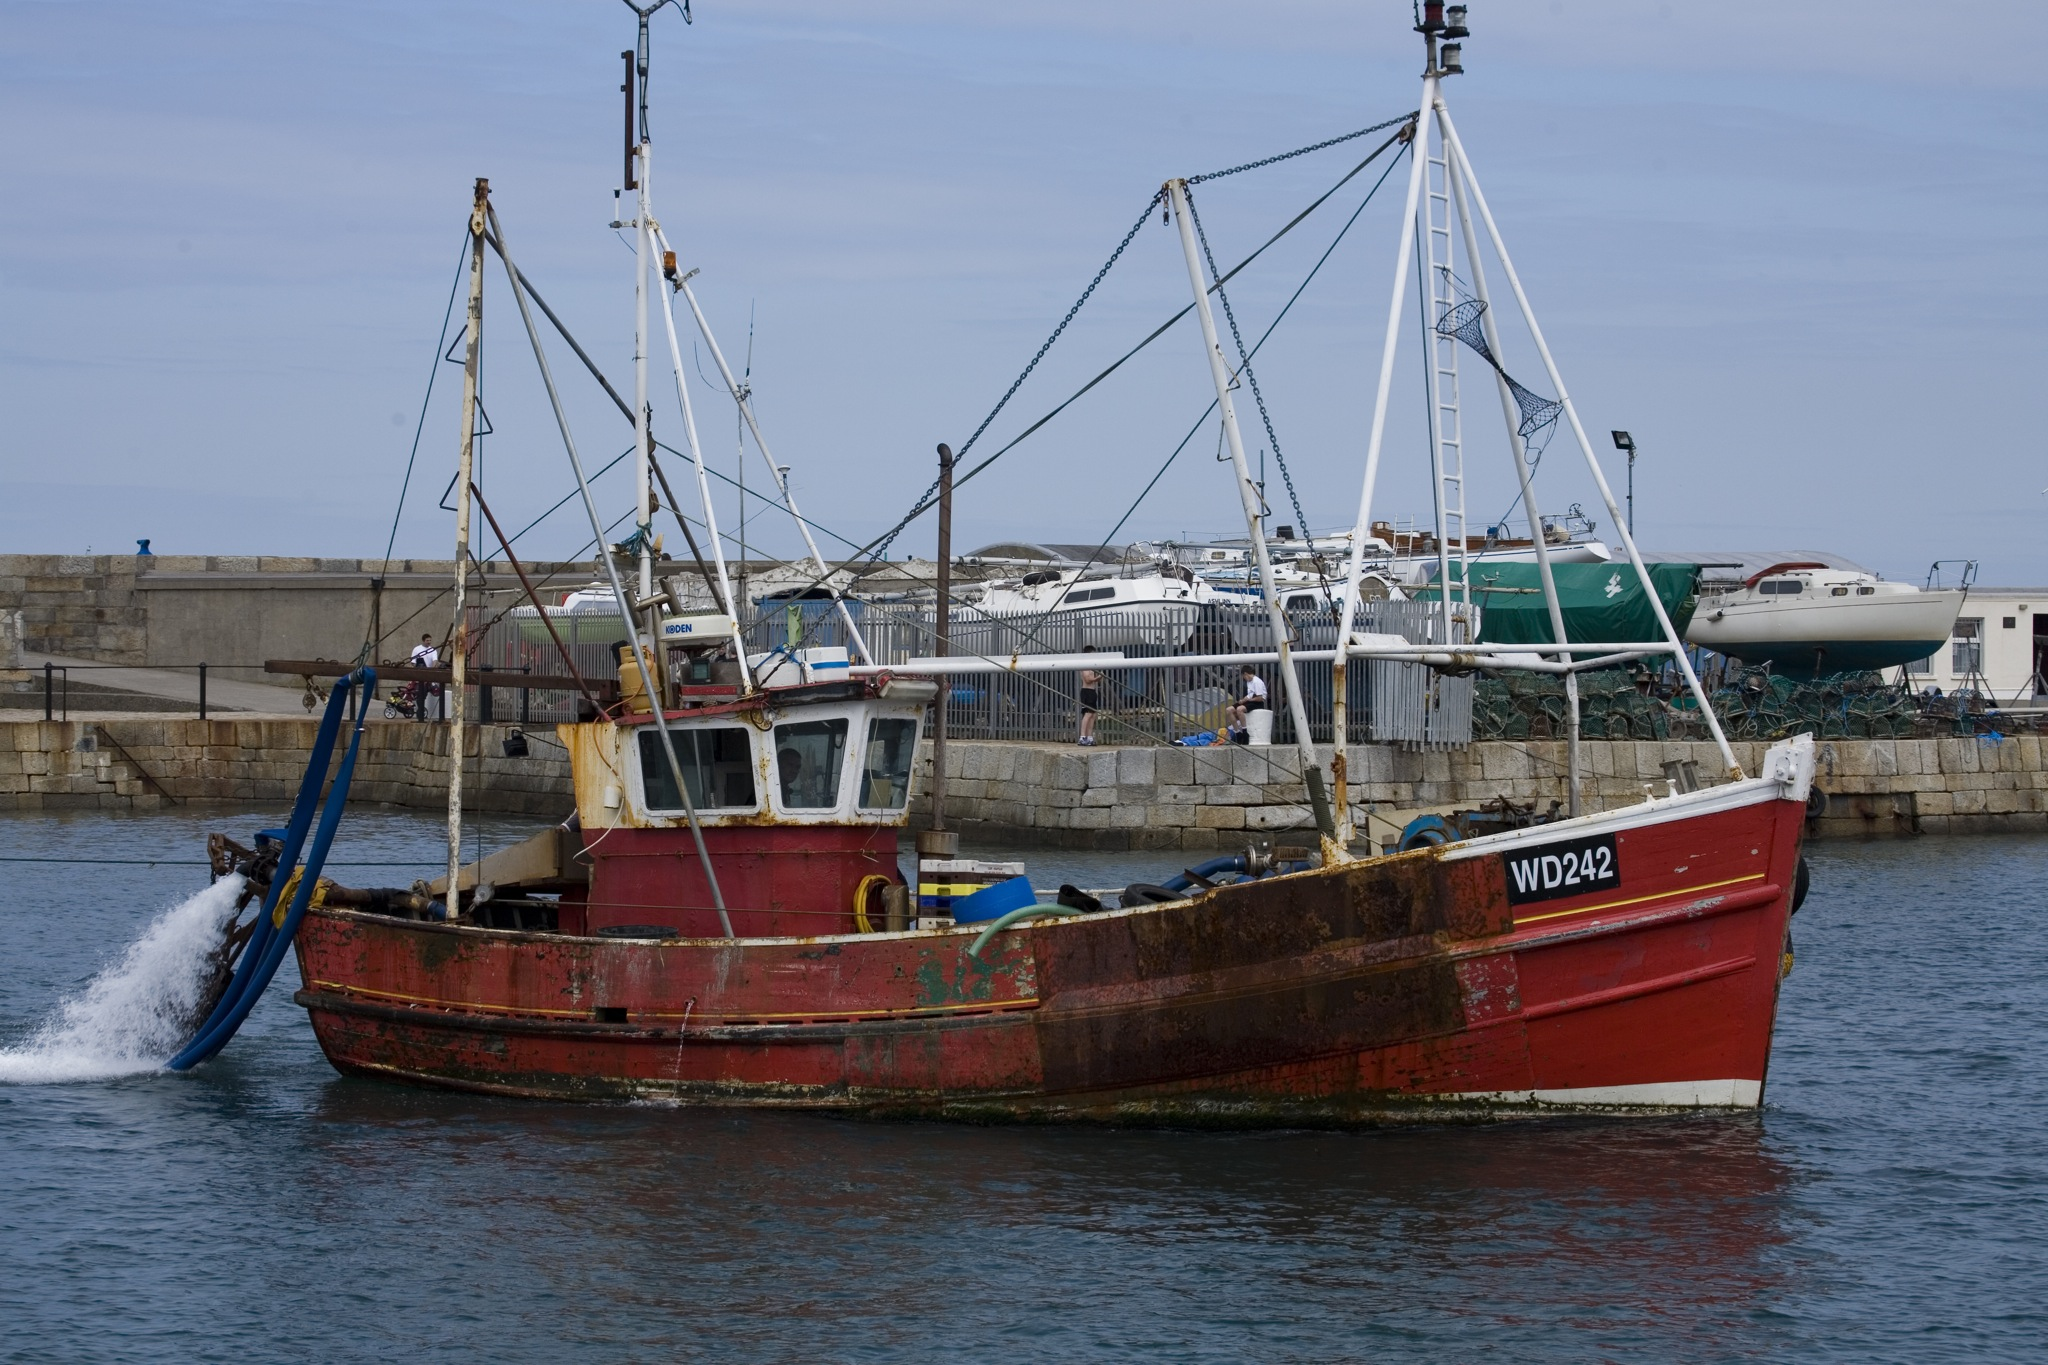 File:Irish fishing boat 02.jpg - Wikipedia